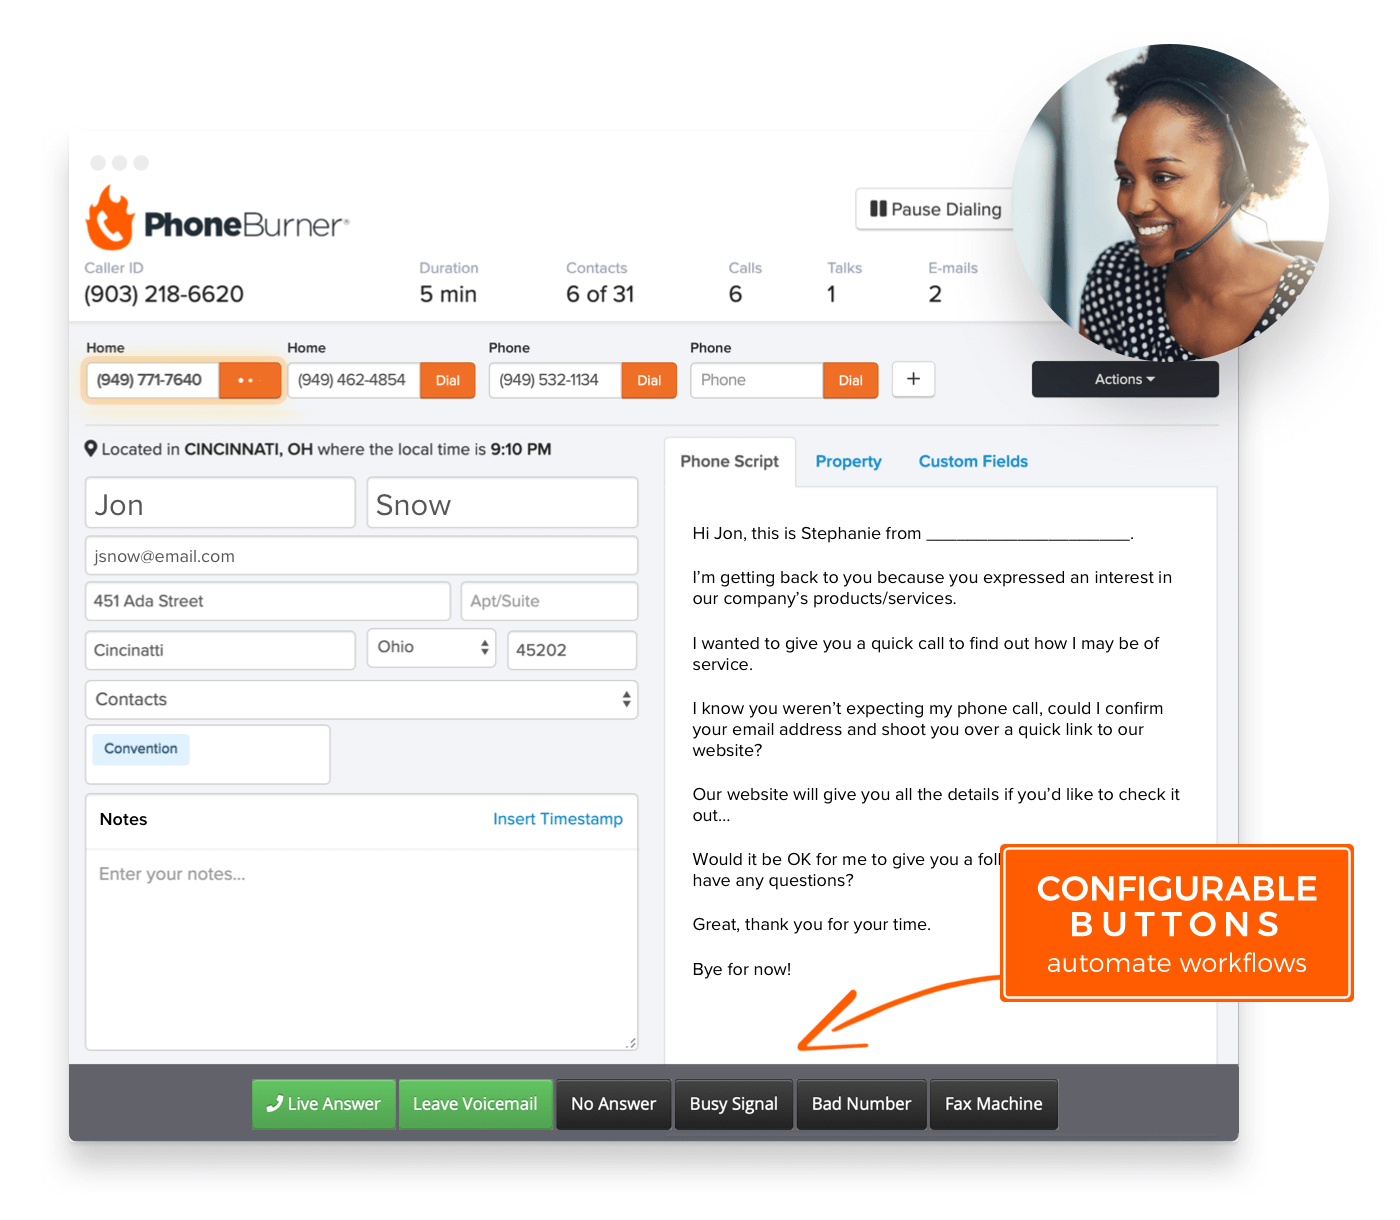 Customize dialer buttons to perform your desired actions based on any call result. Drop voicemails, send emails, apply tags, move contacts into folders or add to do-not-call list, and more.